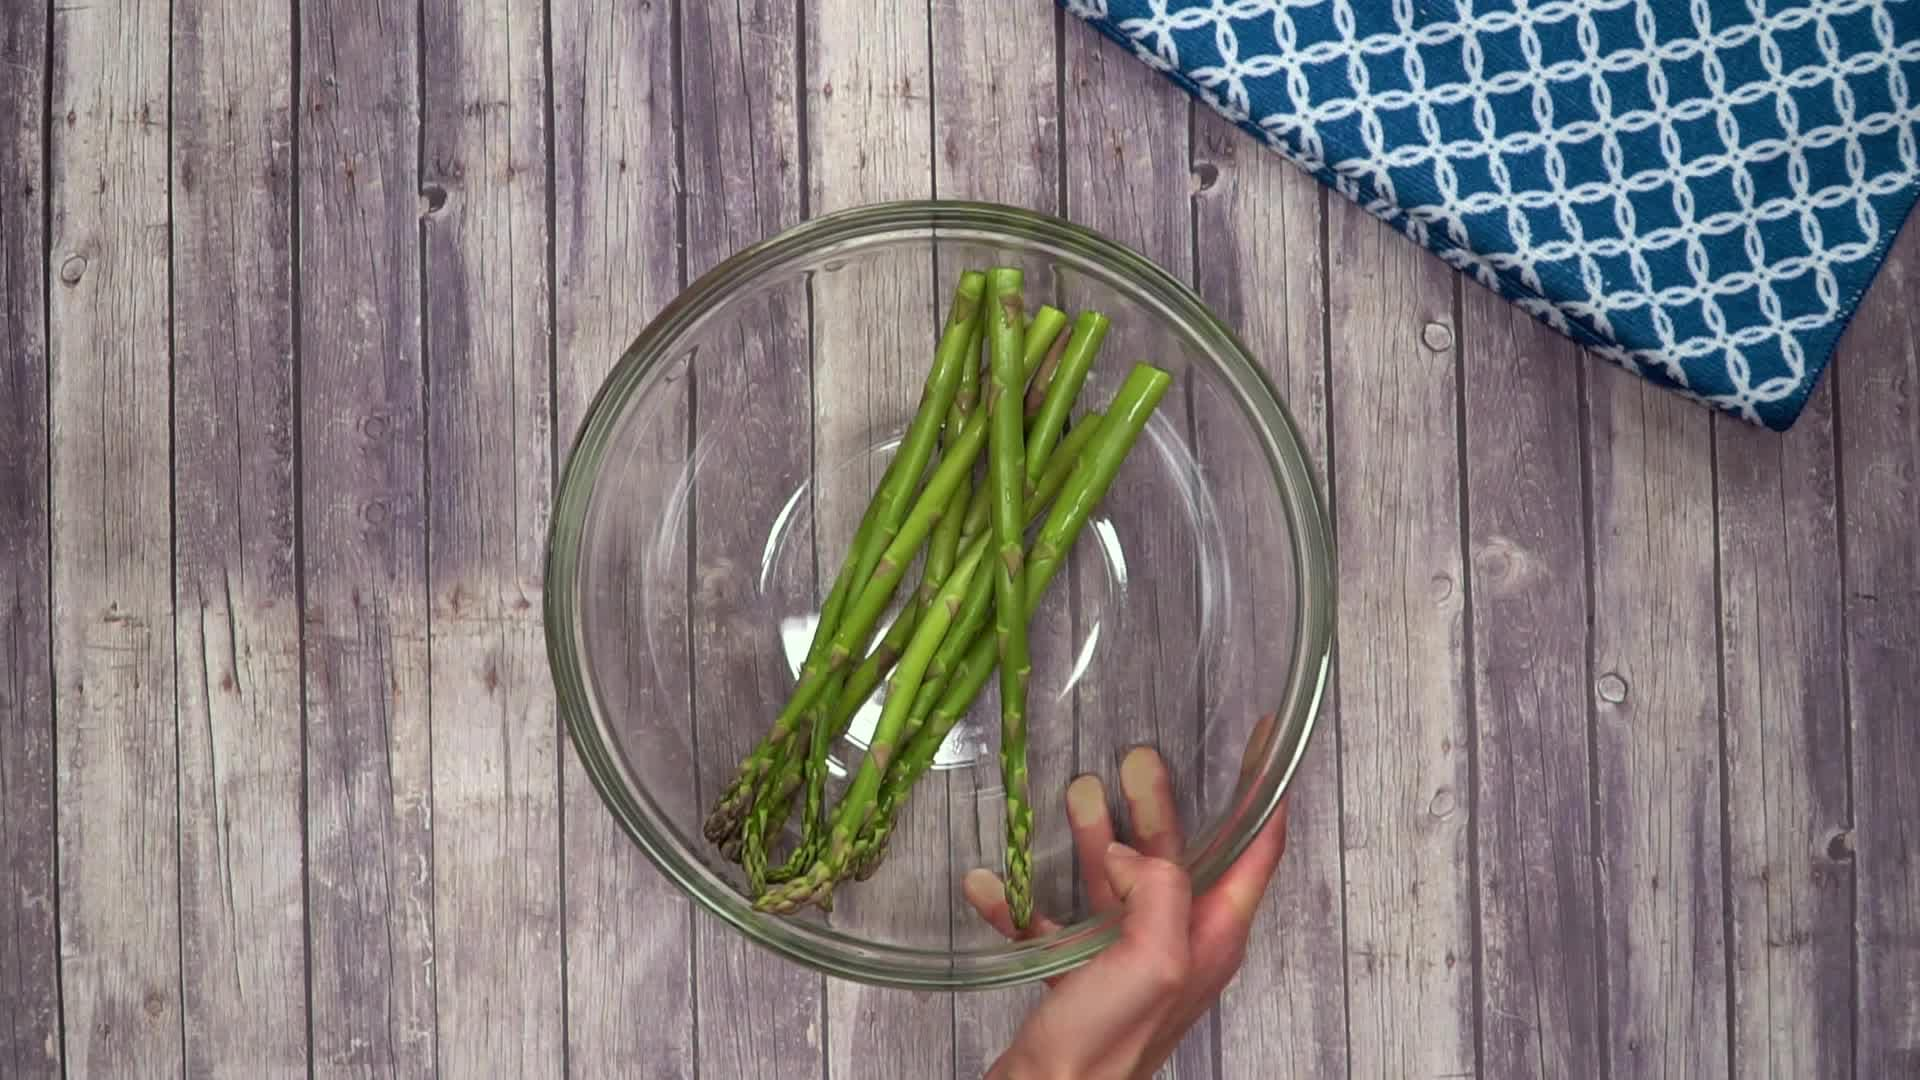 How To Cook Asparagus 3 Ways  Oven, Grill, Or Stovetop  Kitchen Treaty